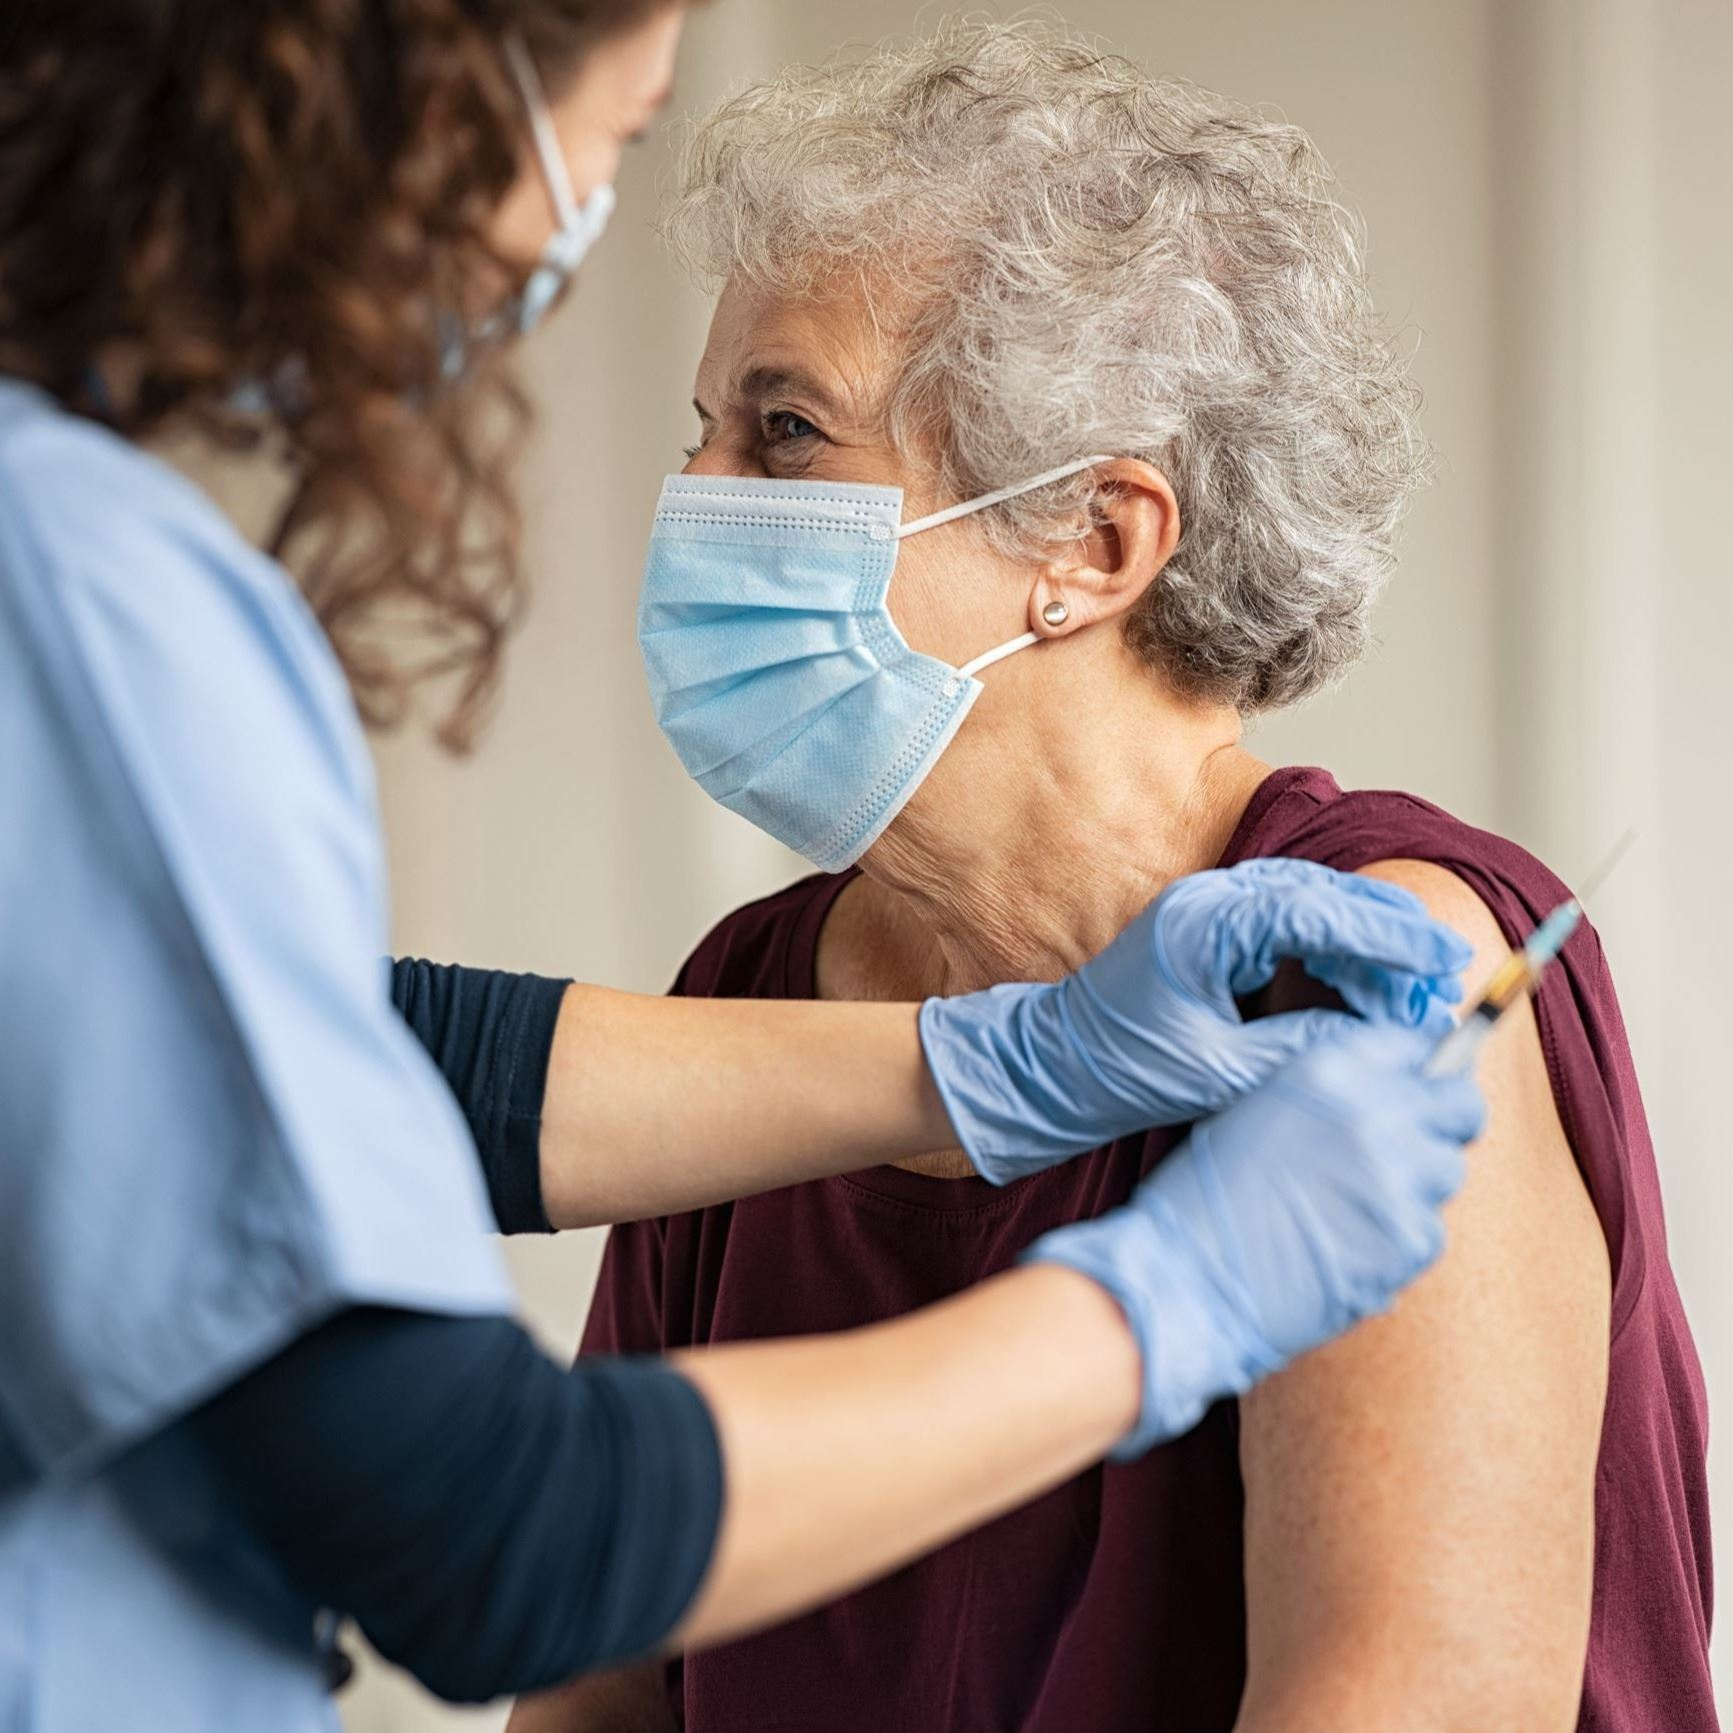 Elderly woman receiving a COVID-19 vaccine from a nurse.